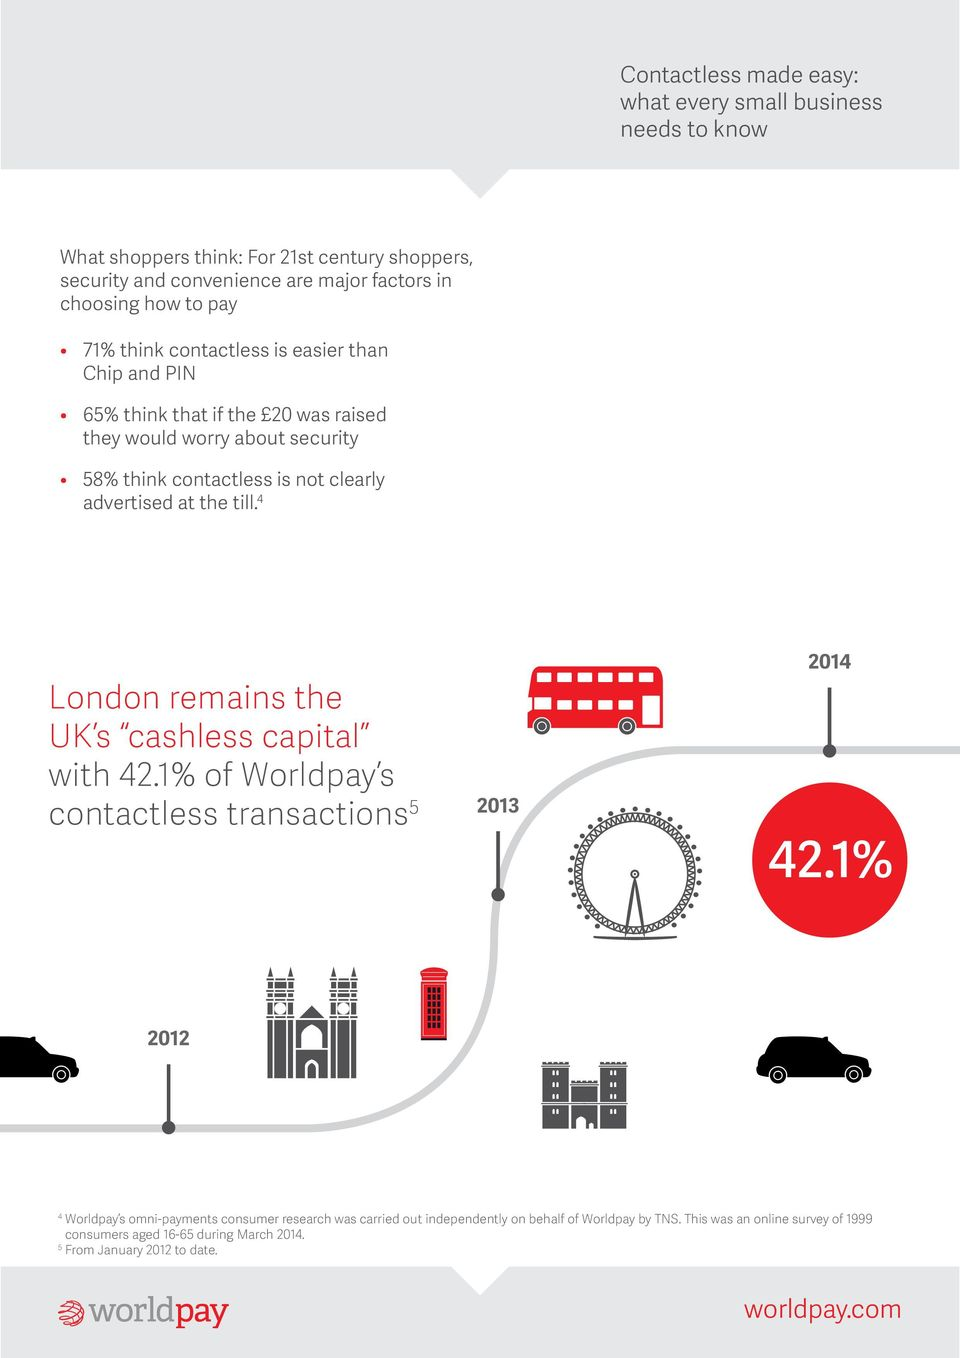 4 London remains the UK s cashless capital with 42.1% of Worldpay s contactless transactions 5 2013 2014 42.